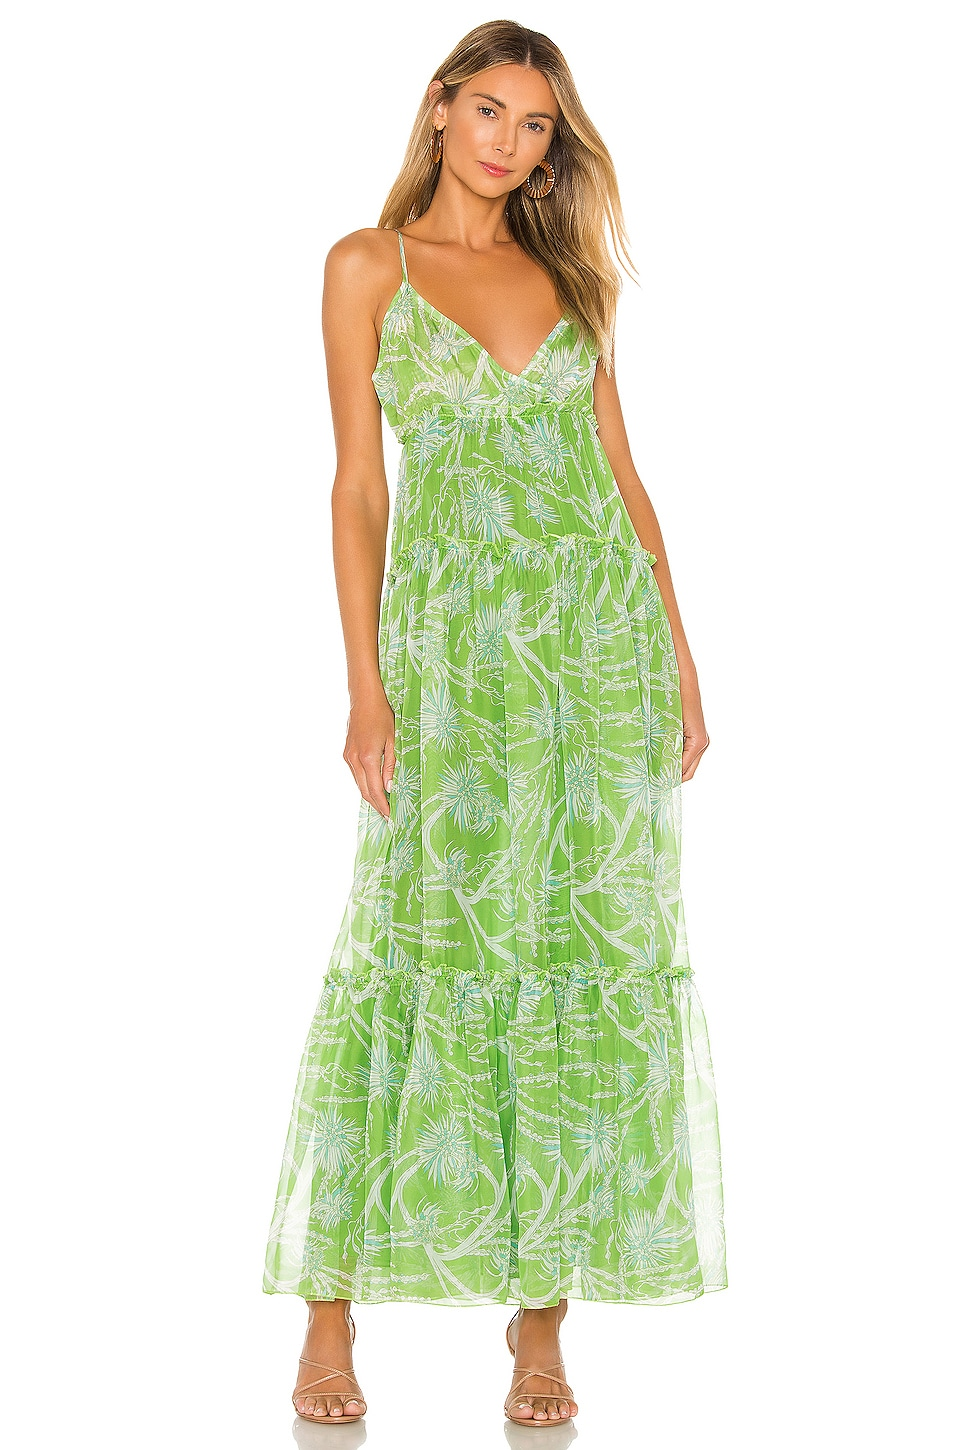 eywasouls malibu Olivia Dress in Queen Green Print